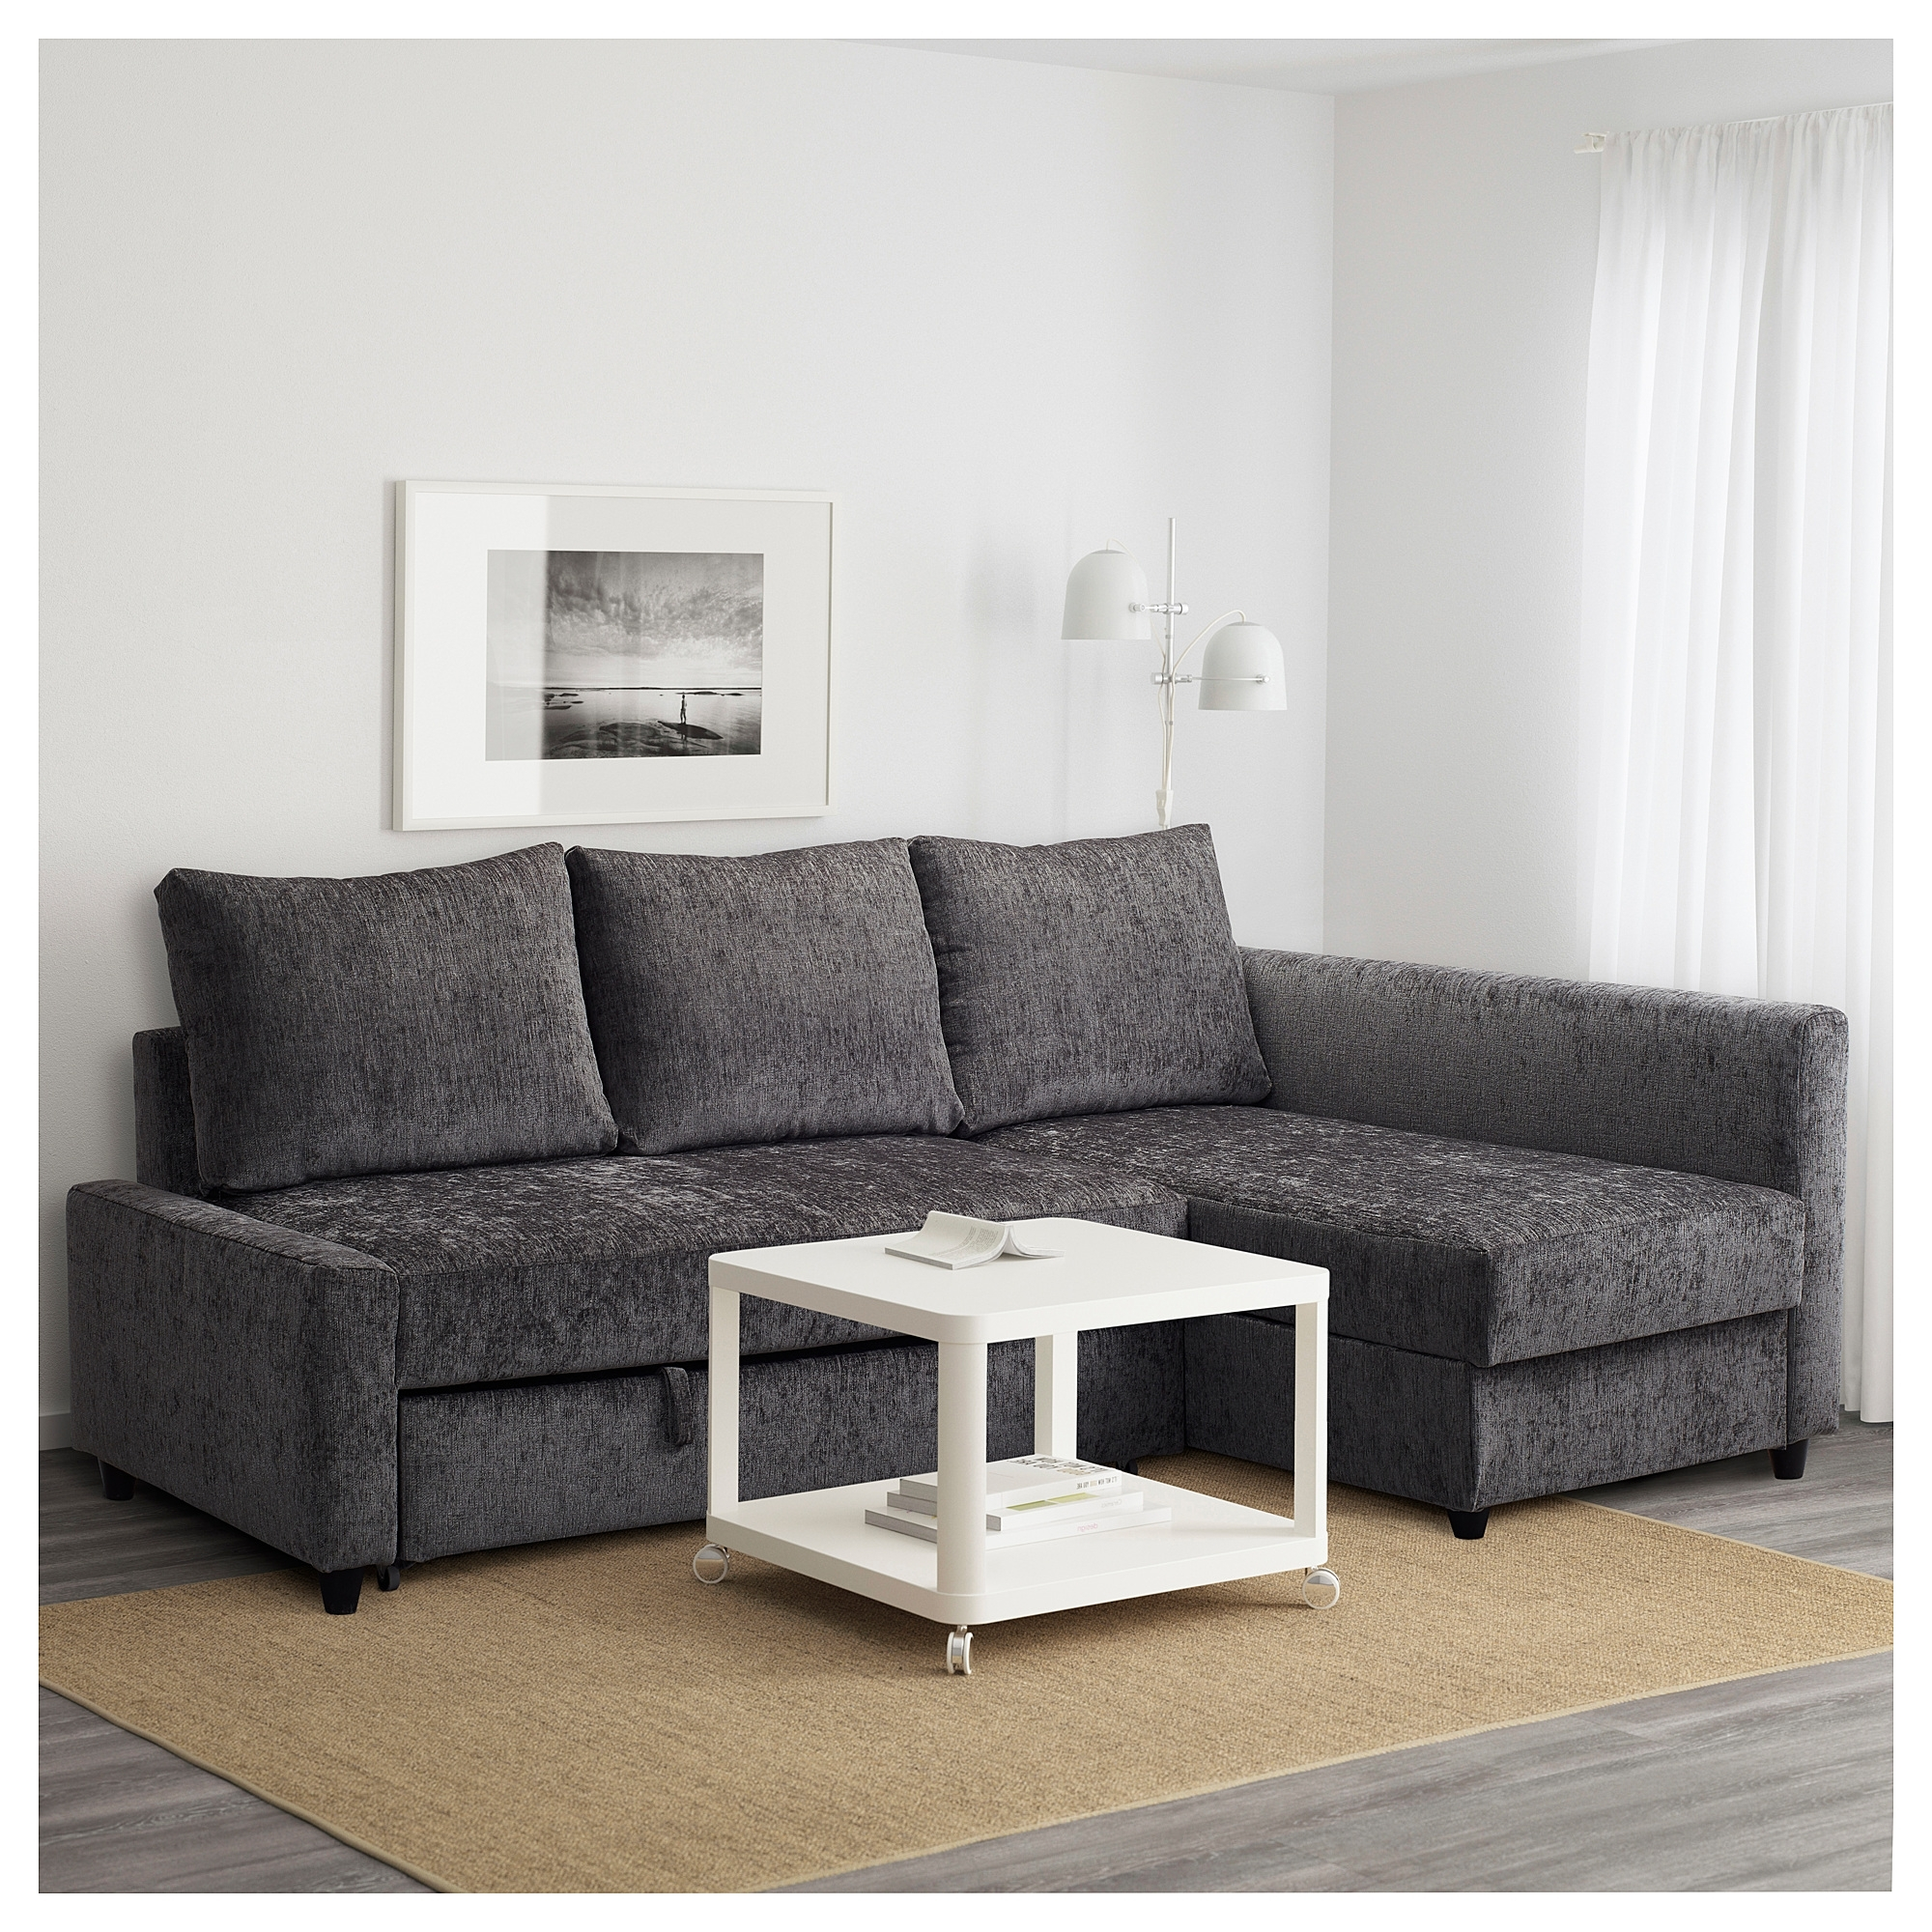 Famous Ikea Corner Sofas With Storage For Friheten Corner Sofa Bed With Storage Dark Grey – Ikea (View 6 of 15)